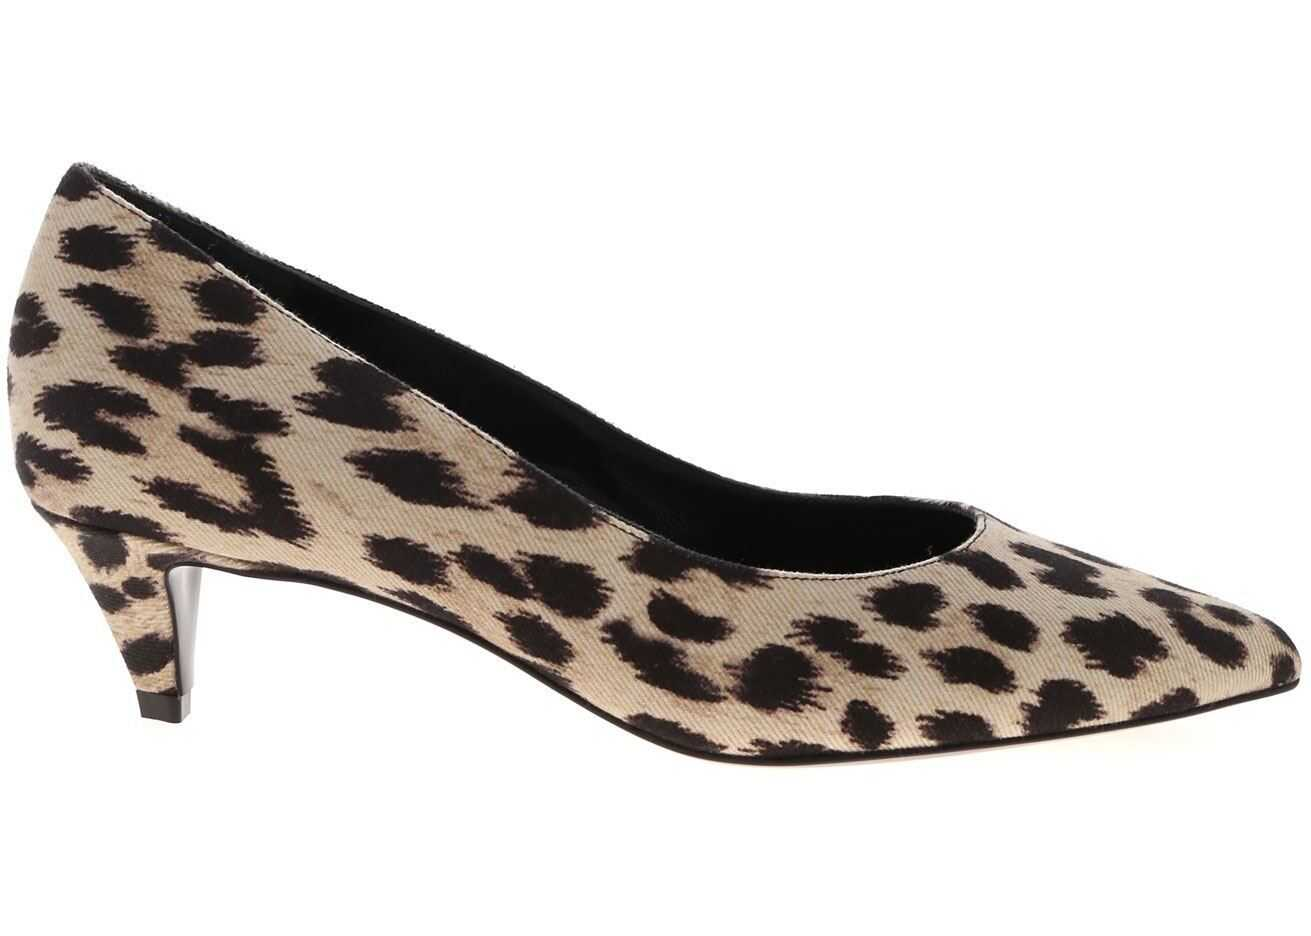 Céline Leopard Pumps In Beige And Black Animal print